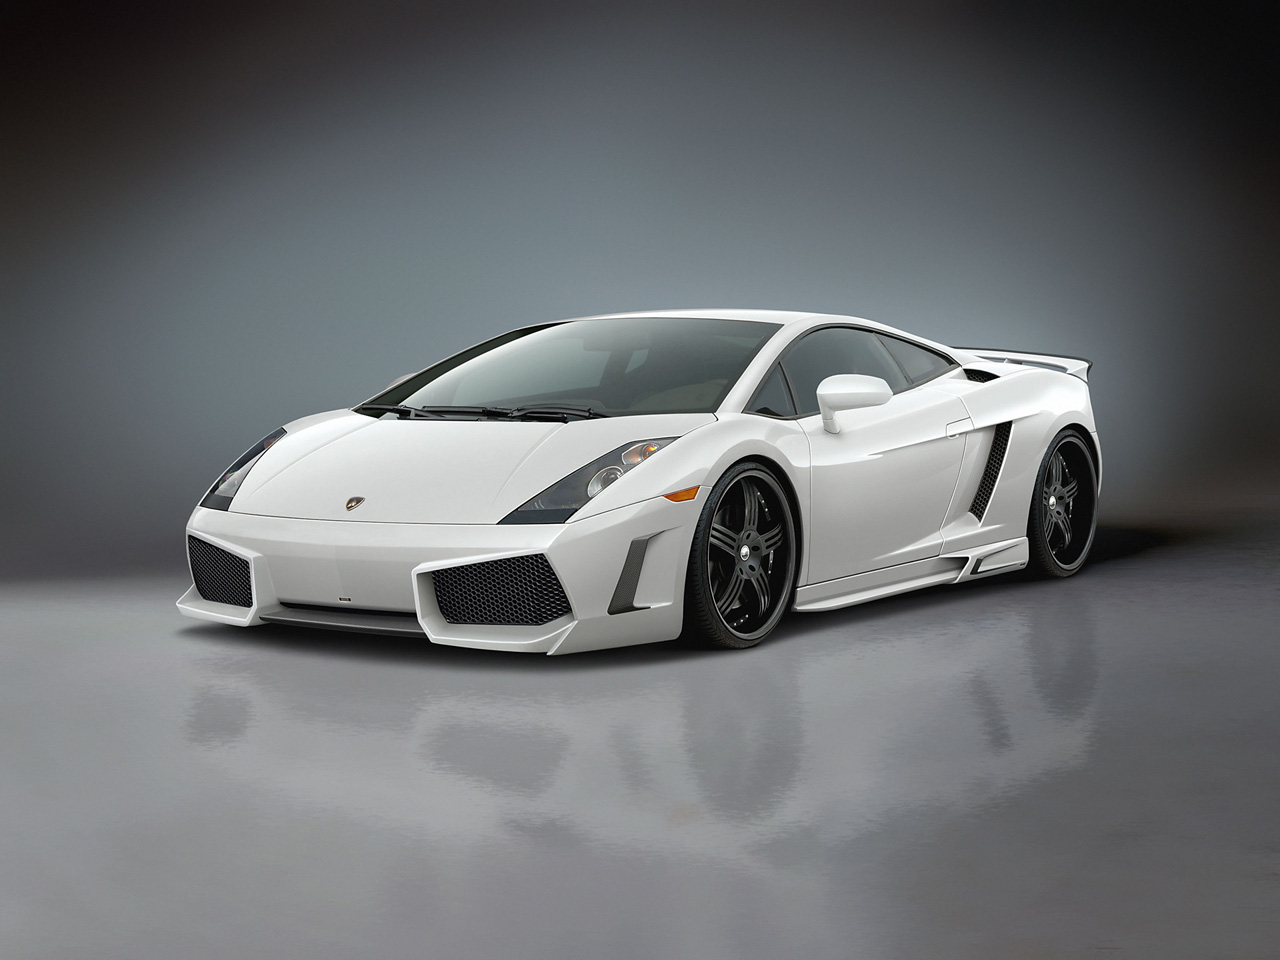 Lamborghini Gallardo Cool Car Wallpapers